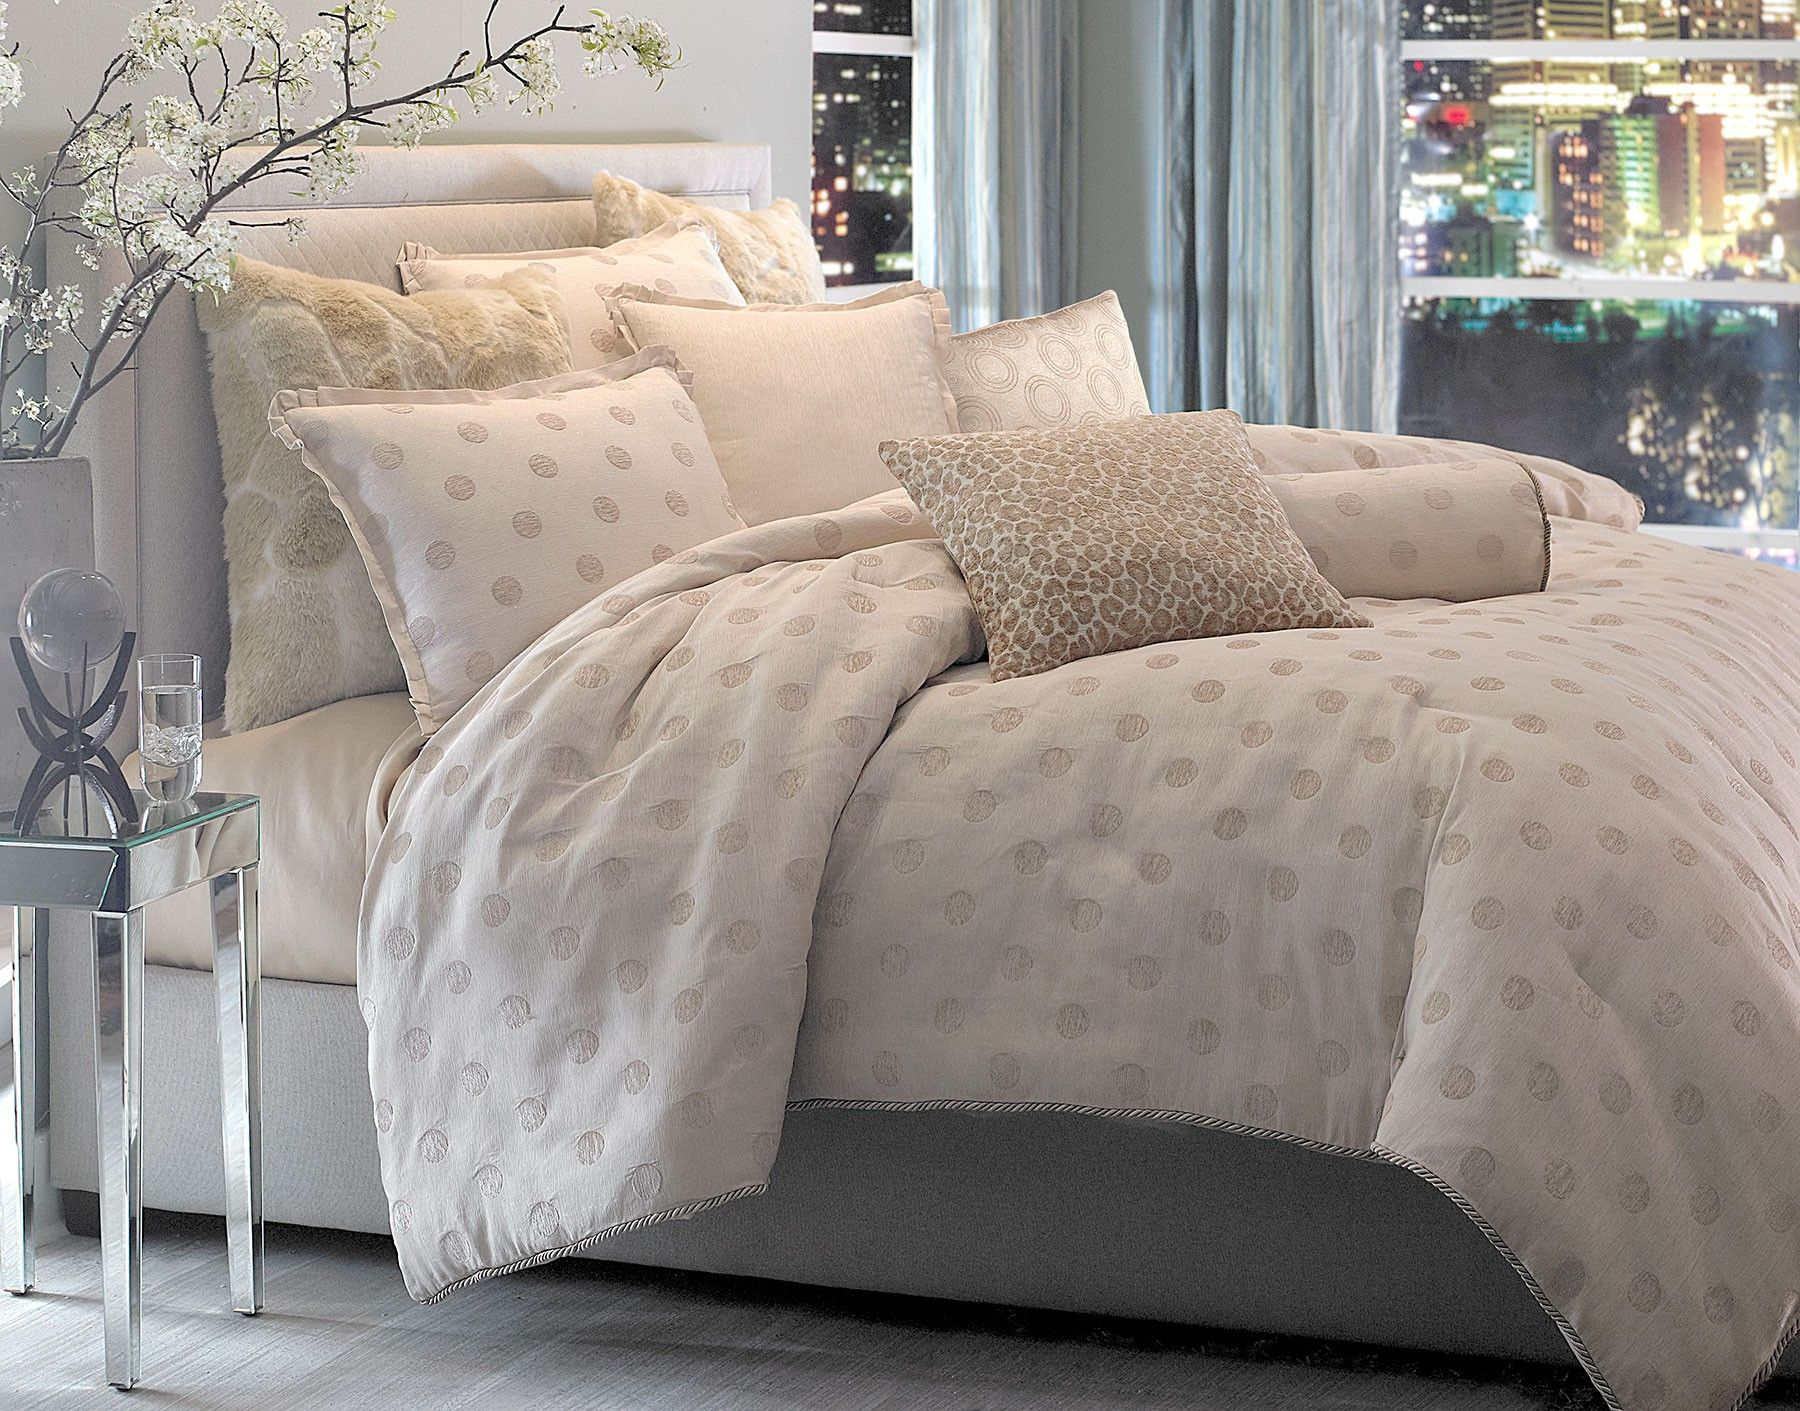 Riviera forter Set available in king and queen bedding aico